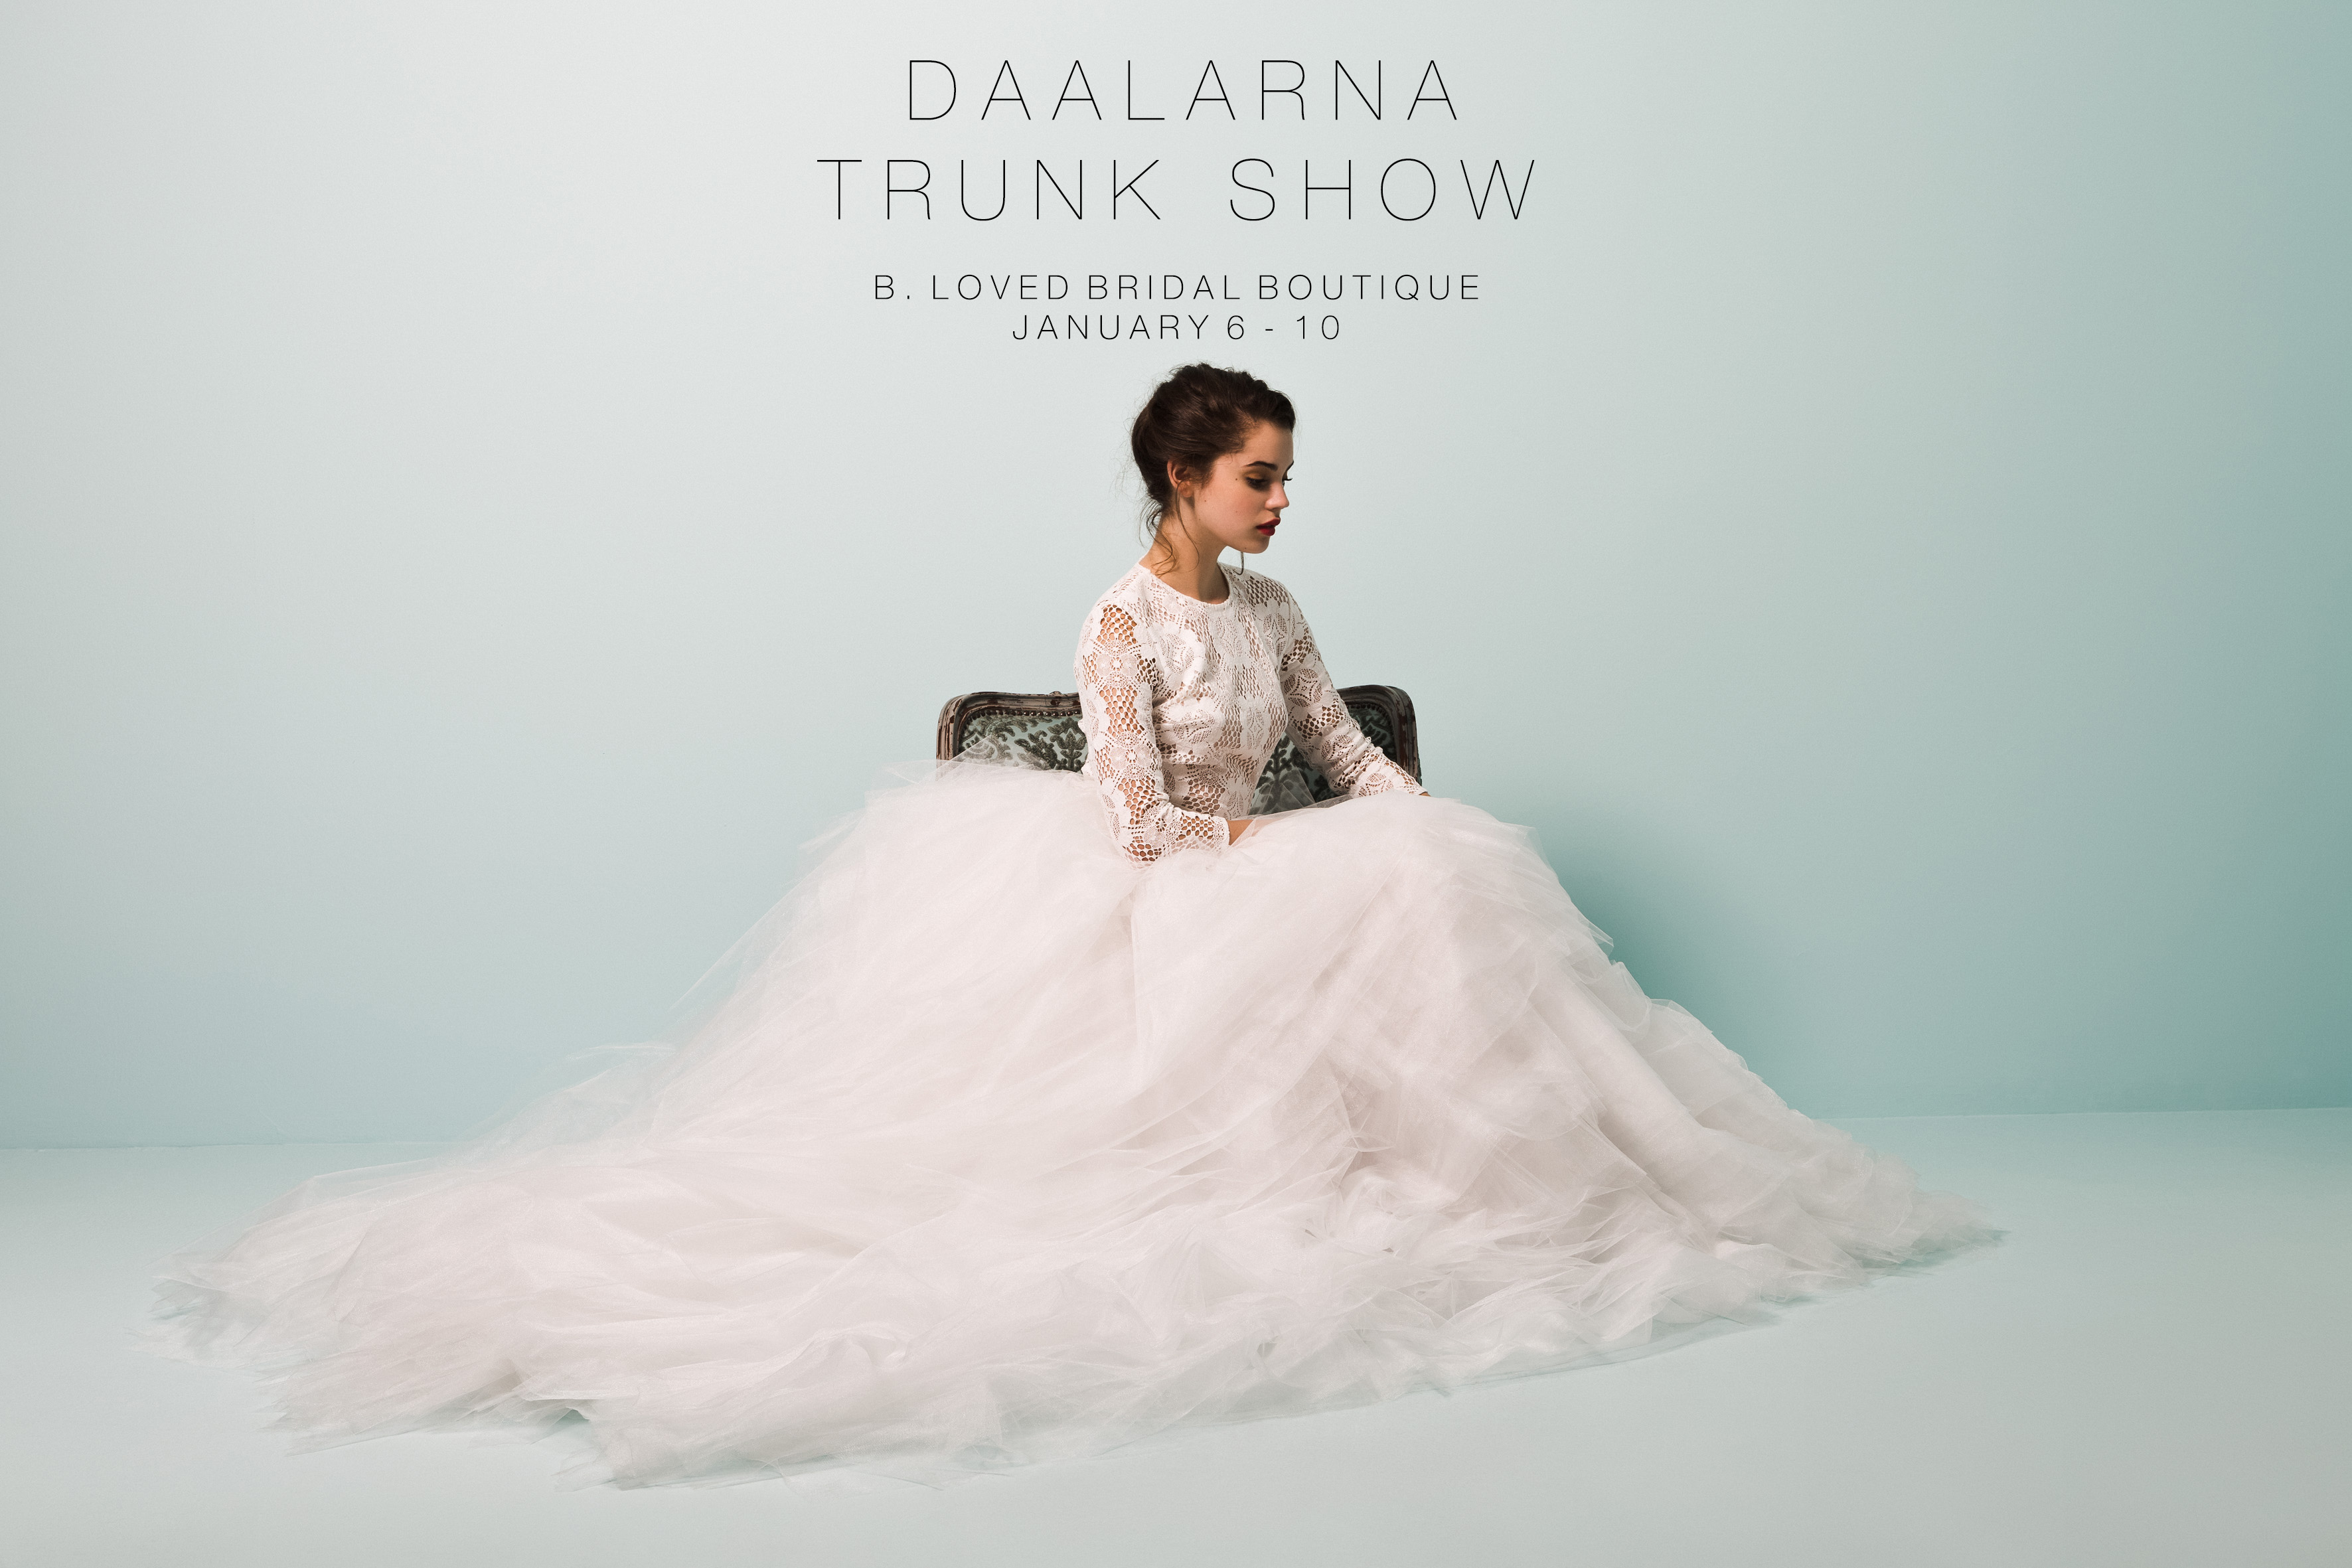 daalarna trunk show b loved bridal boutique